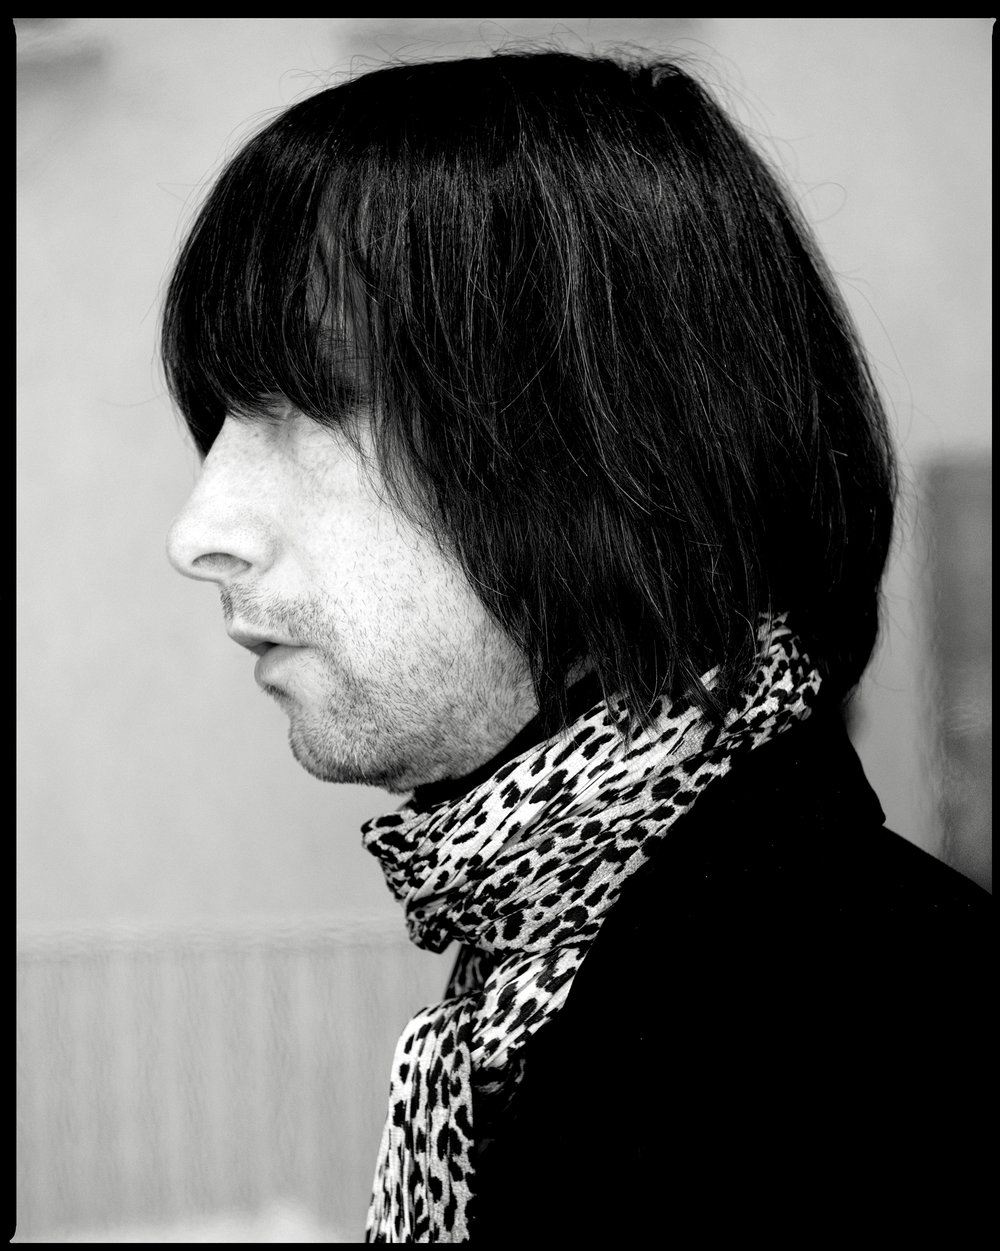 Bobby Gillespie / Primal Scream